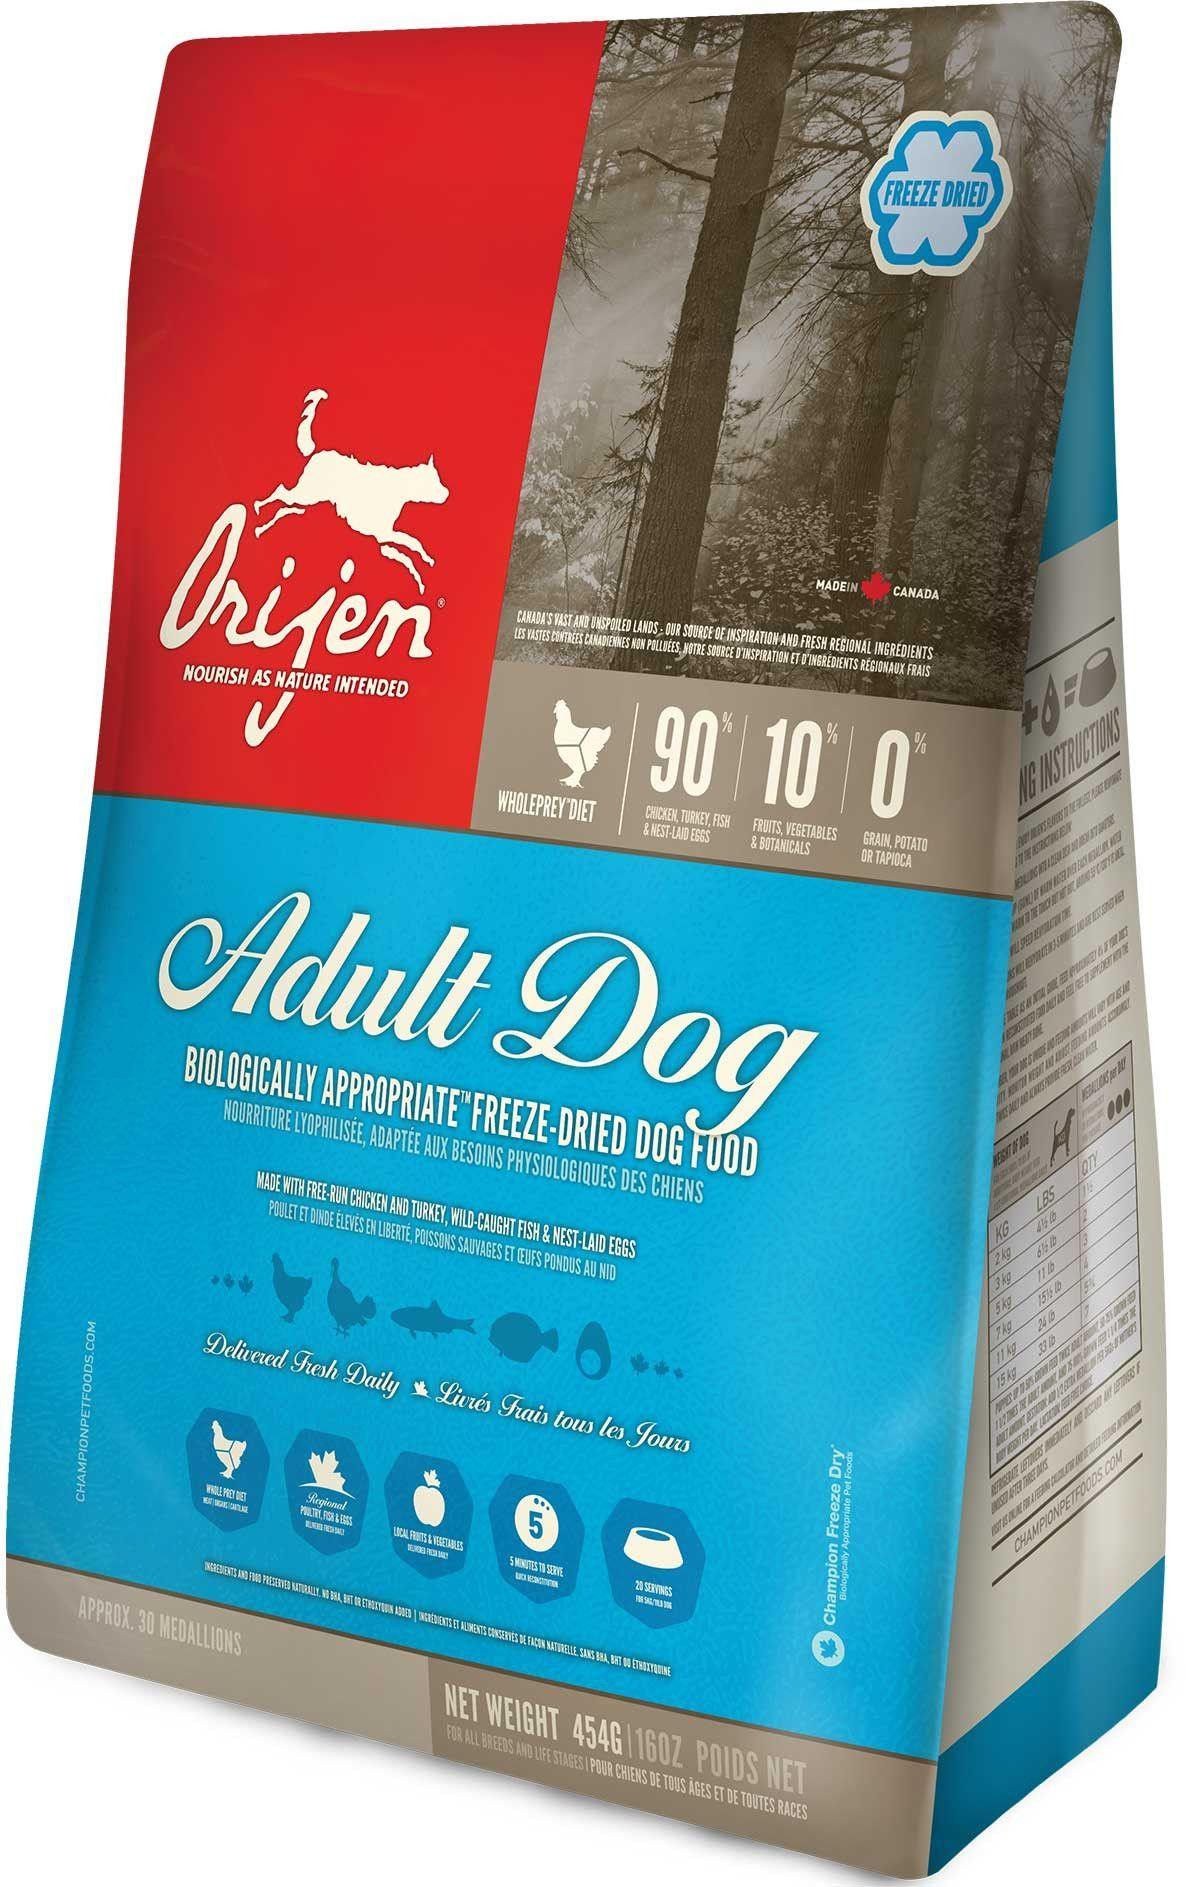 Orijen Adult Dog Freeze Dried Dog Food Recipes Dry Dog Food